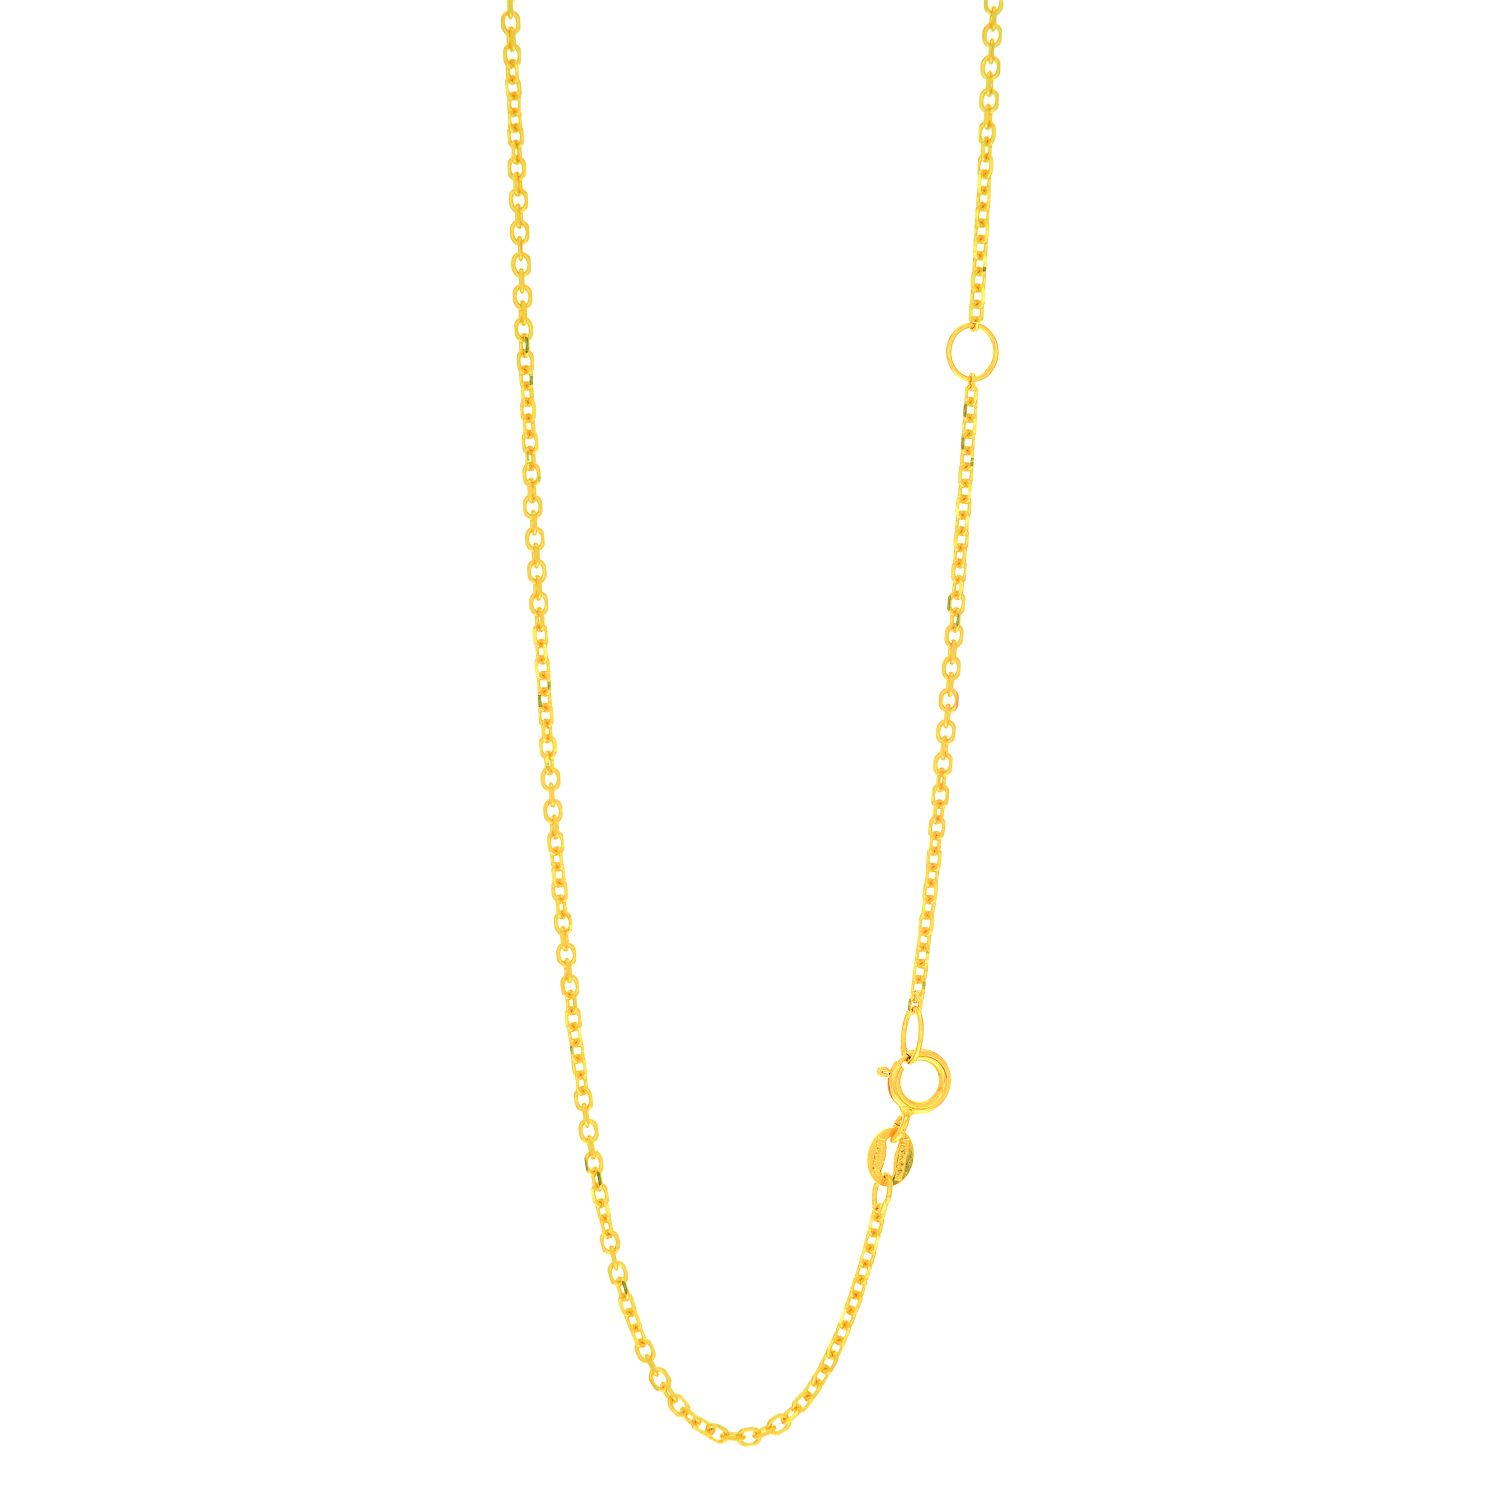 14k Yellow+White Gold 1.0mm Diamond Cut Designer Snake Chain with Lobster Clasp.